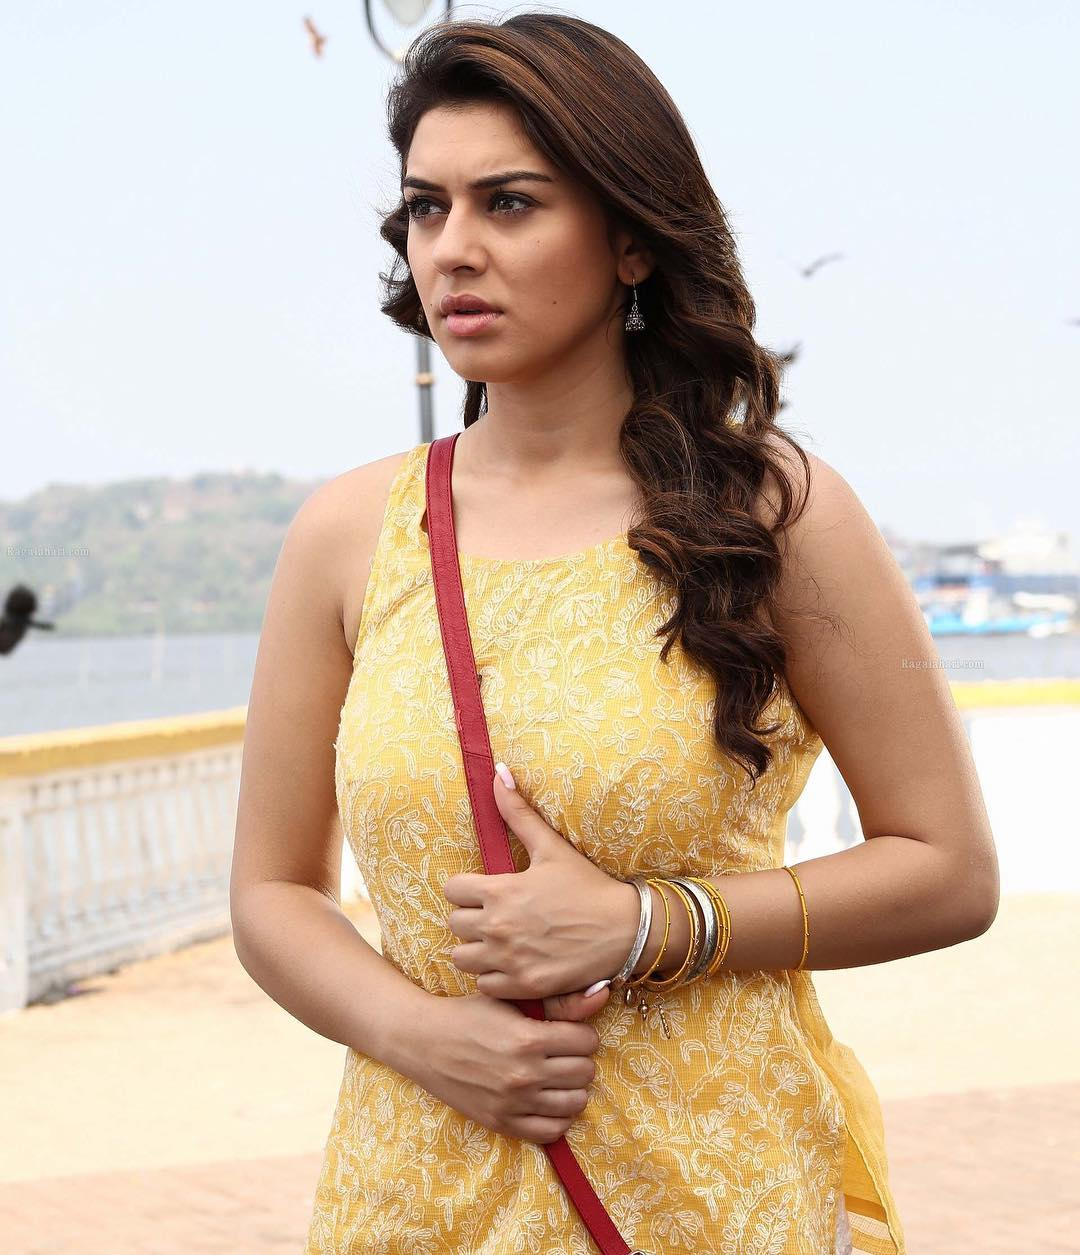 Hansika Photos | Hansika Hot Photos | Hansika Motwani images - HD Actress Photo